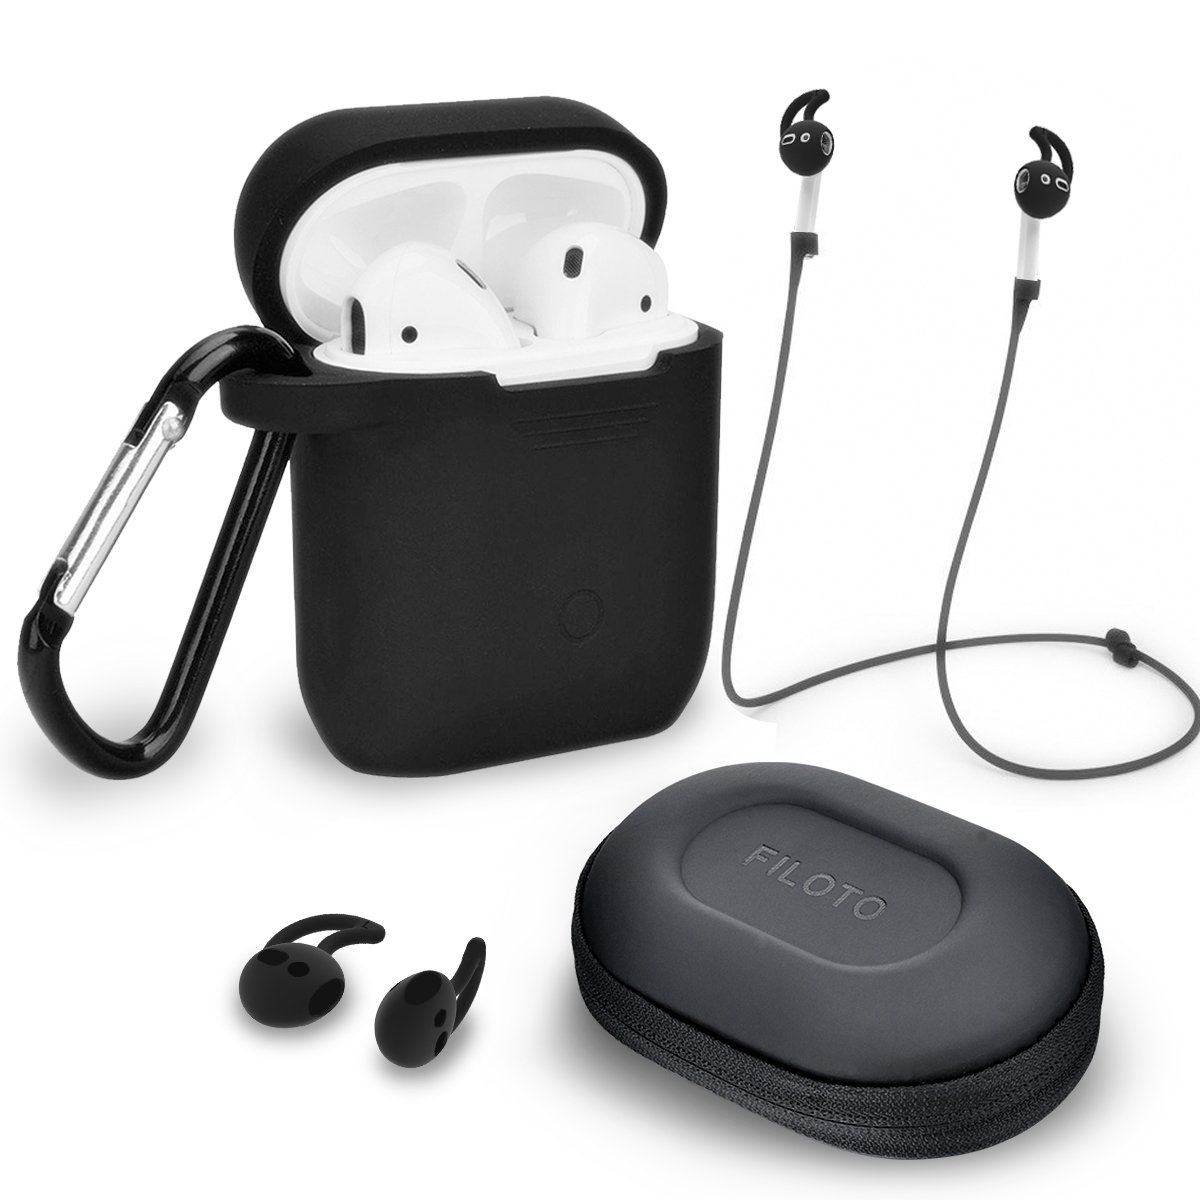 Airpods Accessories Set, Filoto Airpods Waterproof Silicone Case Cover